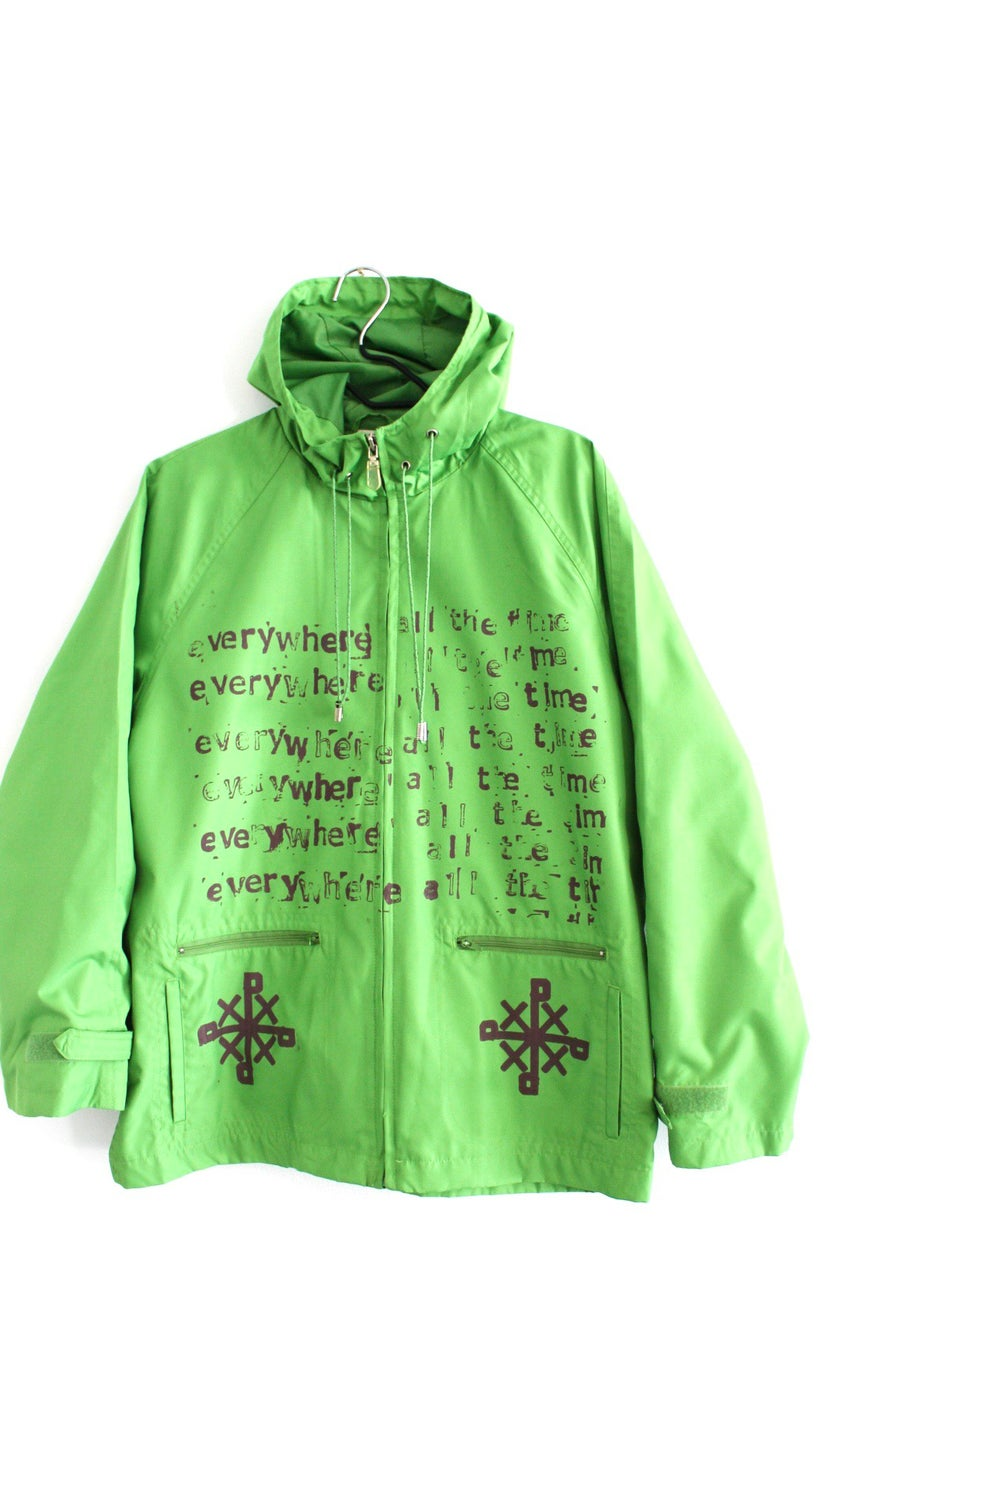 everywhere all the time rain coat in light green